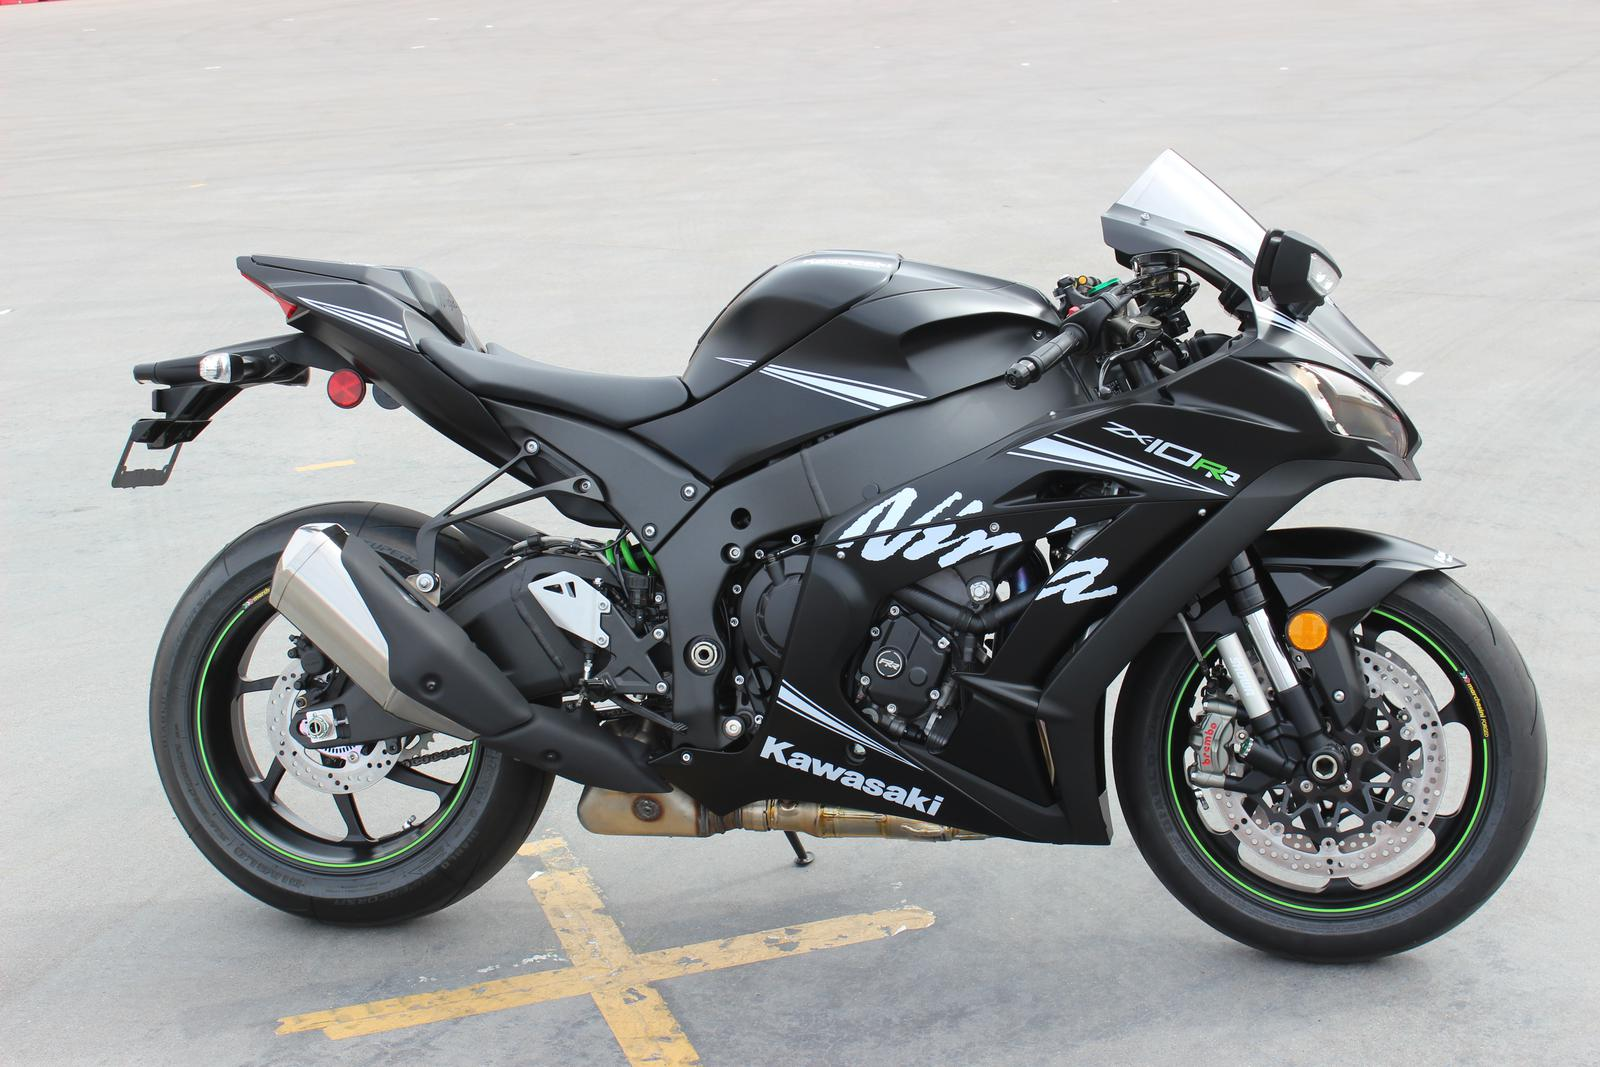 2018 Kawasaki Ninja ZX-10RR for sale in Scottsdale, AZ | GO AZ ...